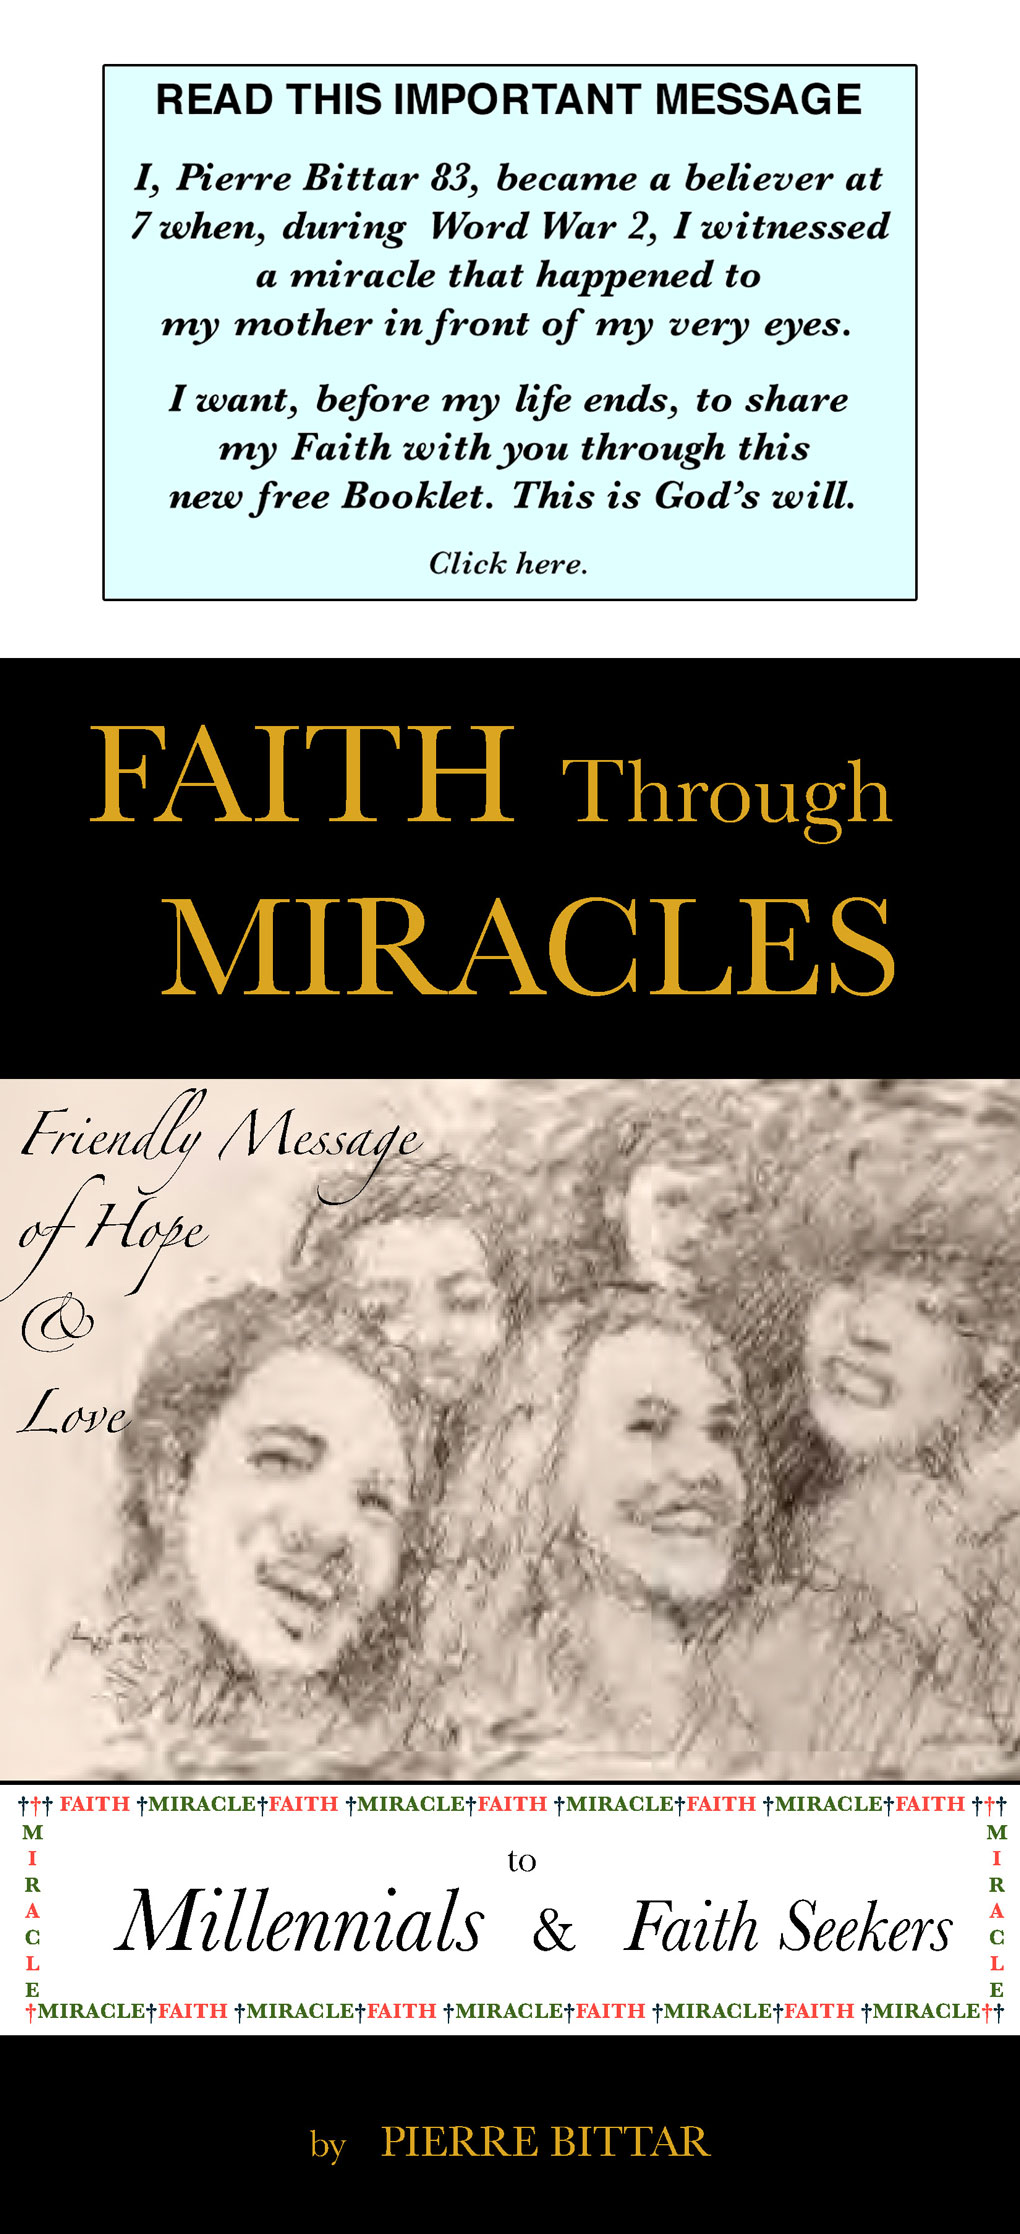 faith through miracles news